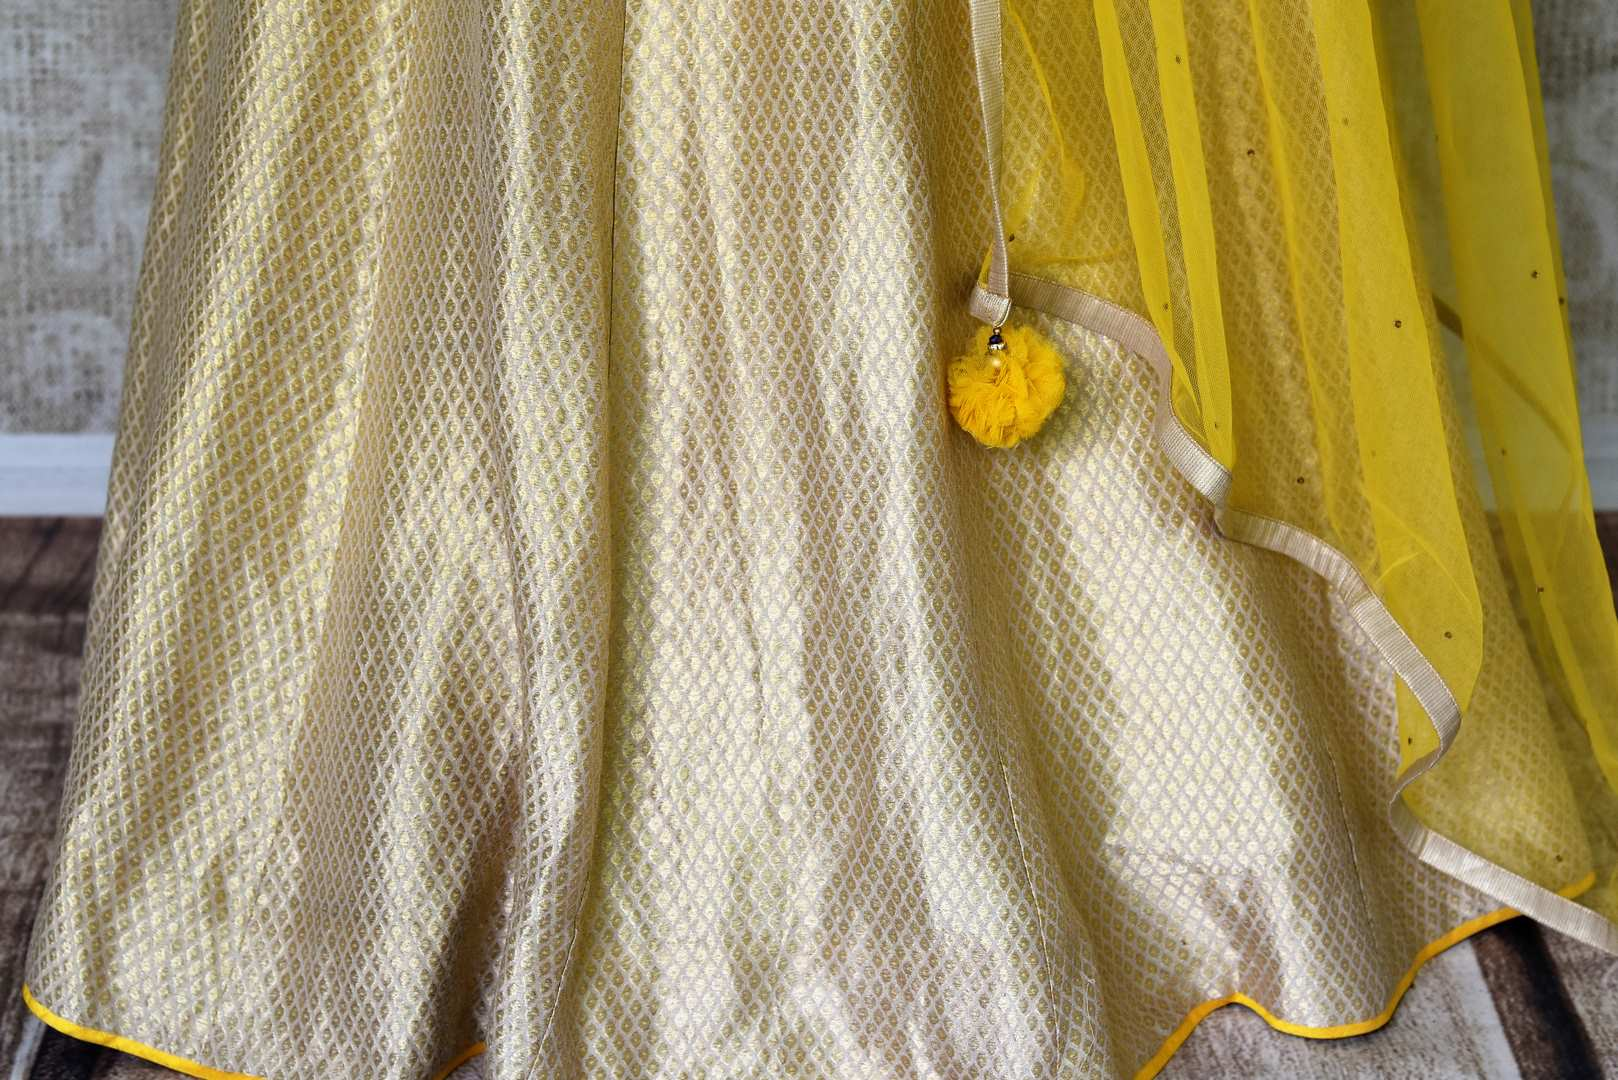 Buy yellow embroidered peplum kurti with skirt online in USA and dupatta. Make every occasion special by choosing the best of designer dresses from Pure Elegance Indian clothing store in USA, Shop from a range of stunning designer lehengas, wedding dresses, Indian clothing from our online store.-skirt